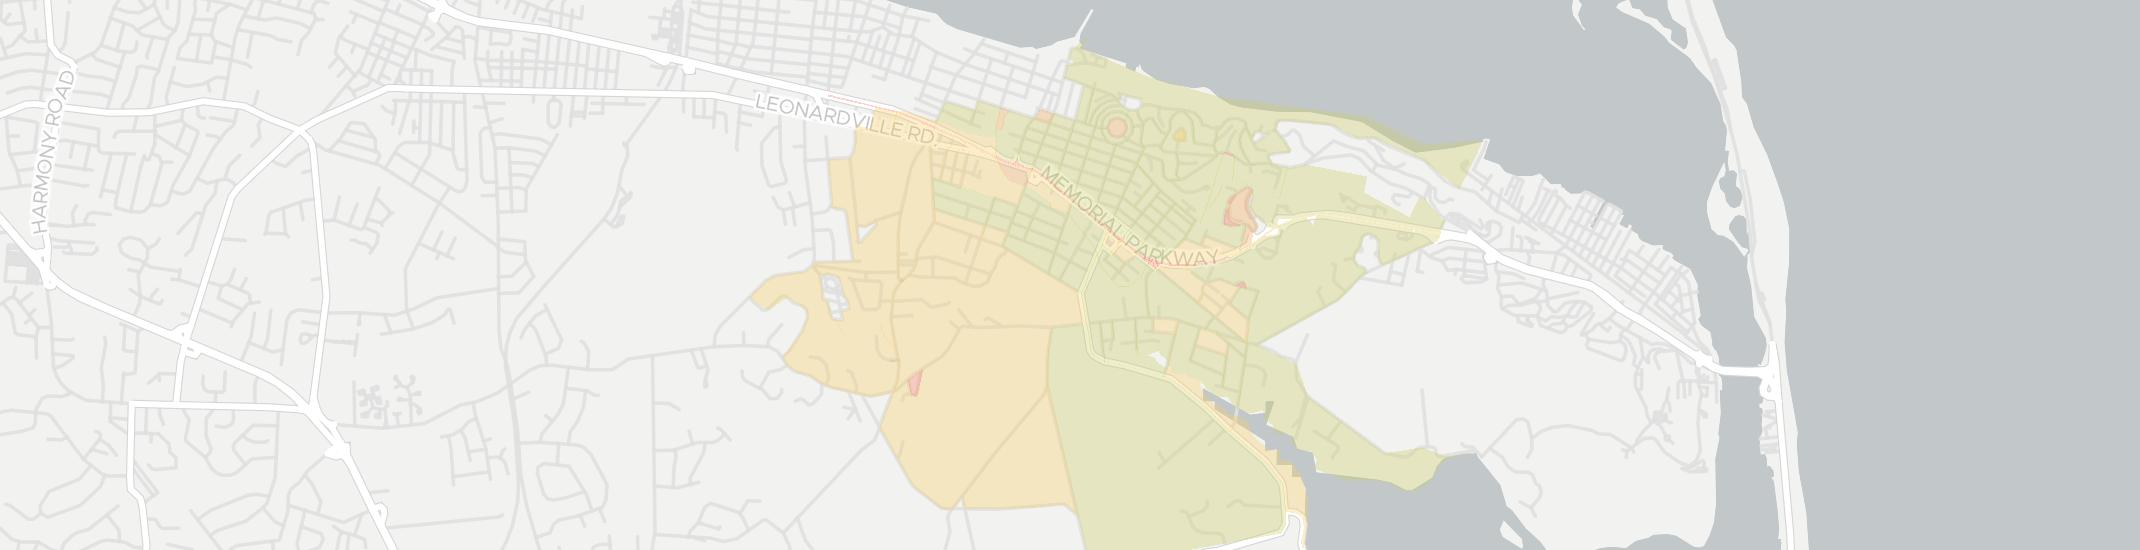 Navesink Internet Competition Map. Click for interactive map.